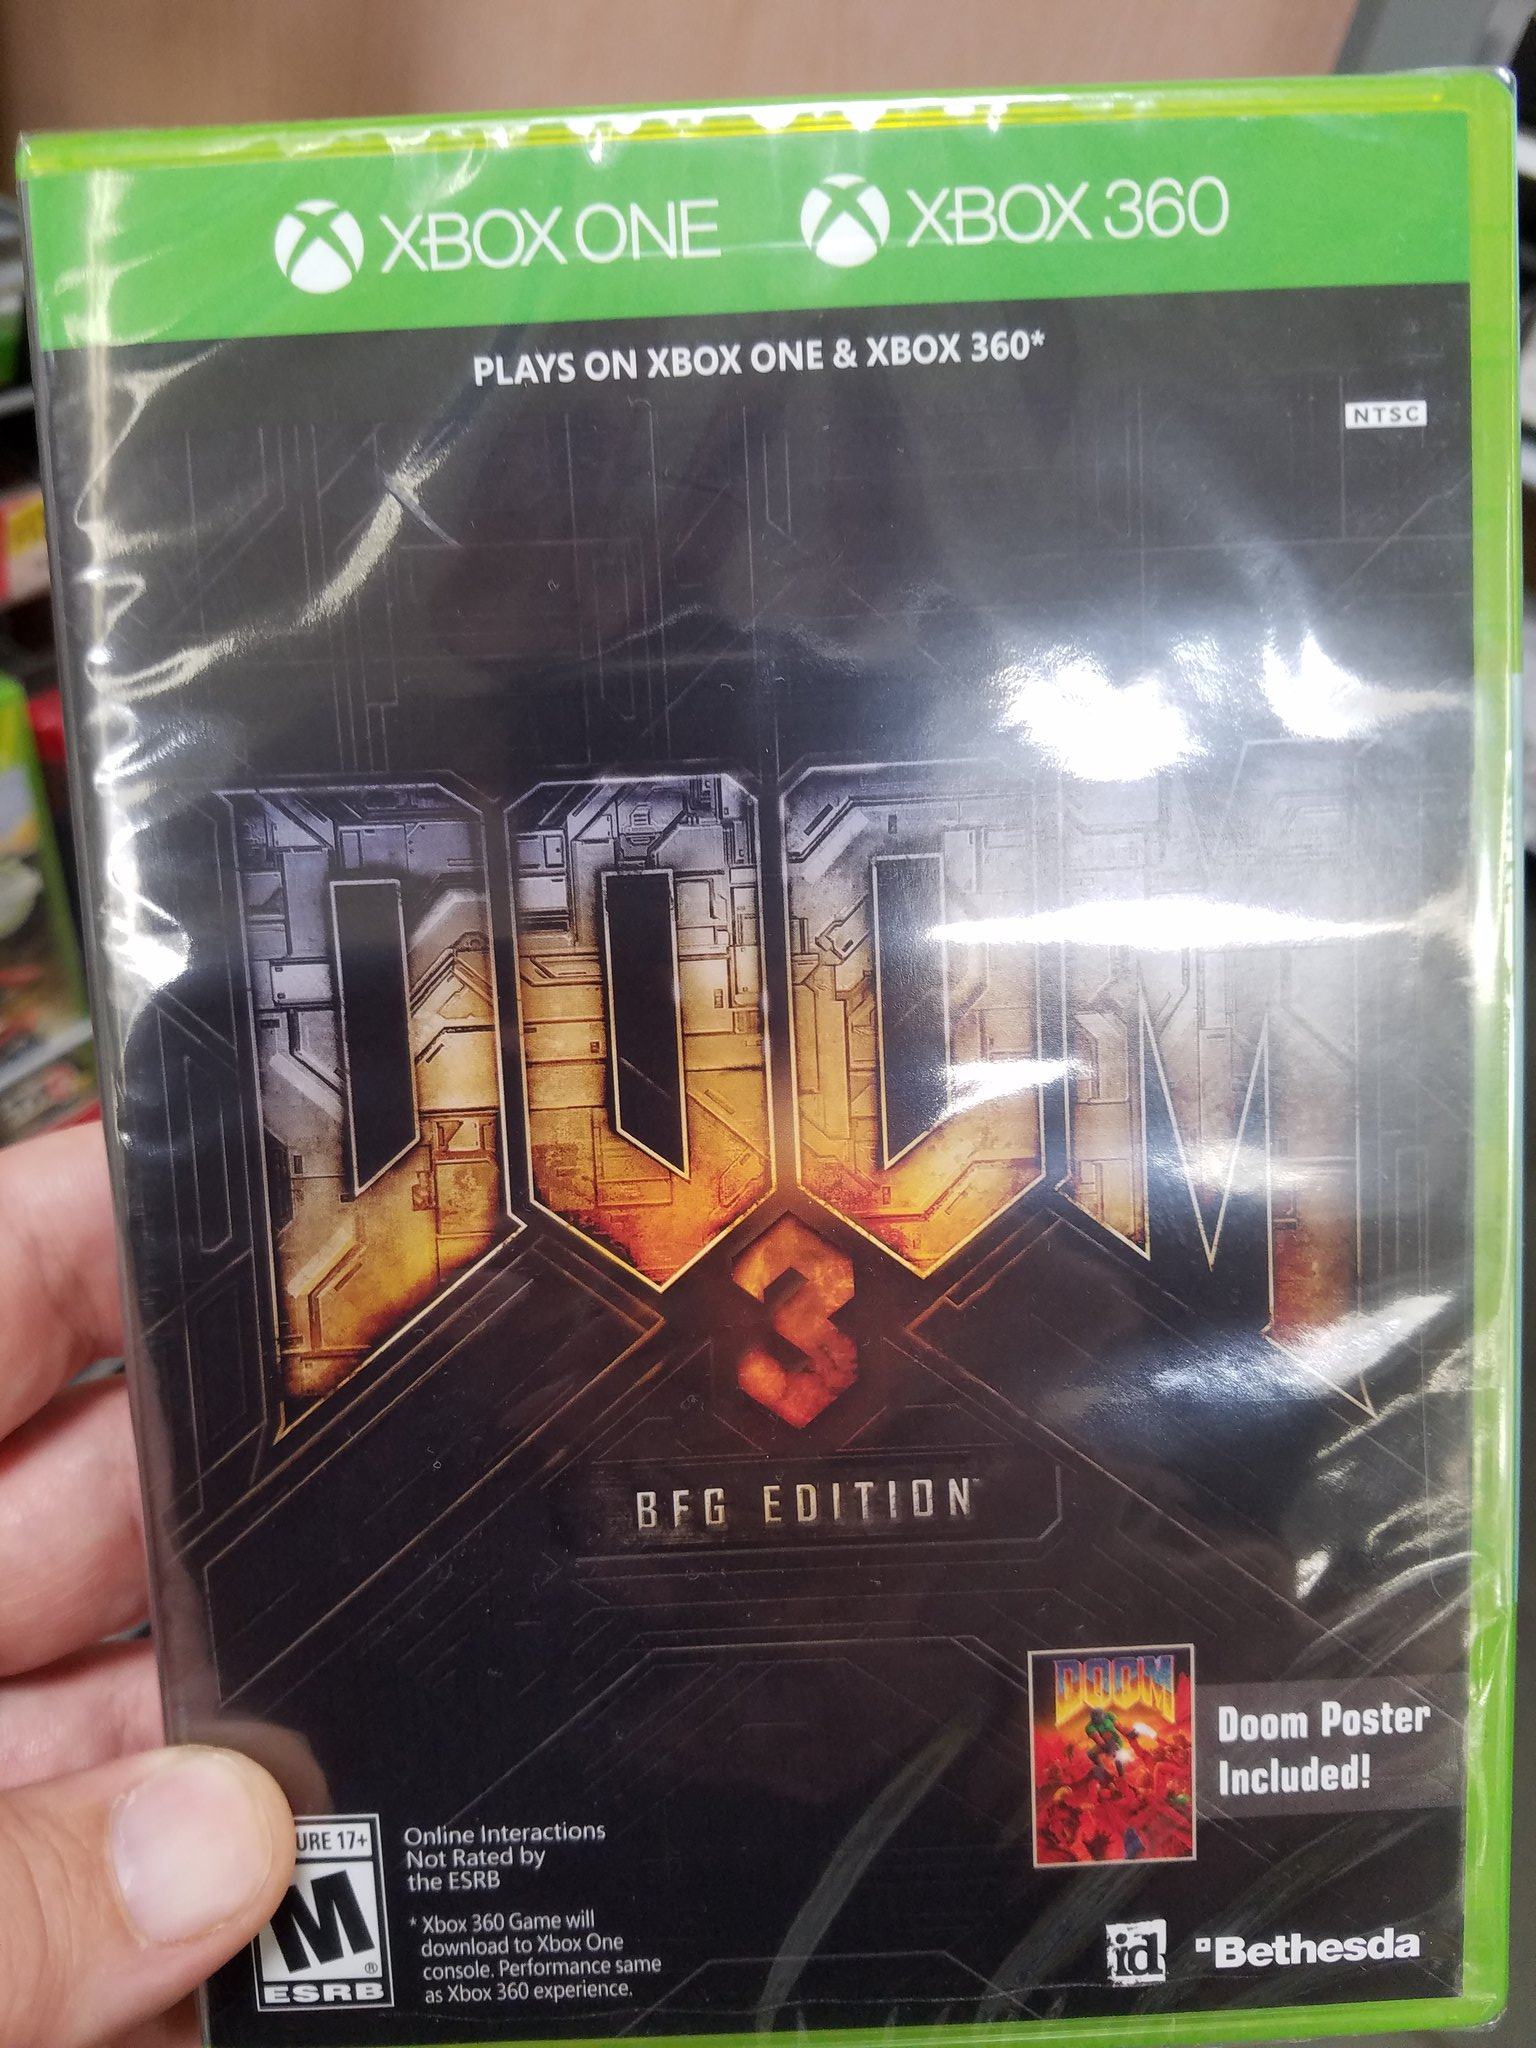 Xbox 360 backwards compatible games are getting reprinted, sold at